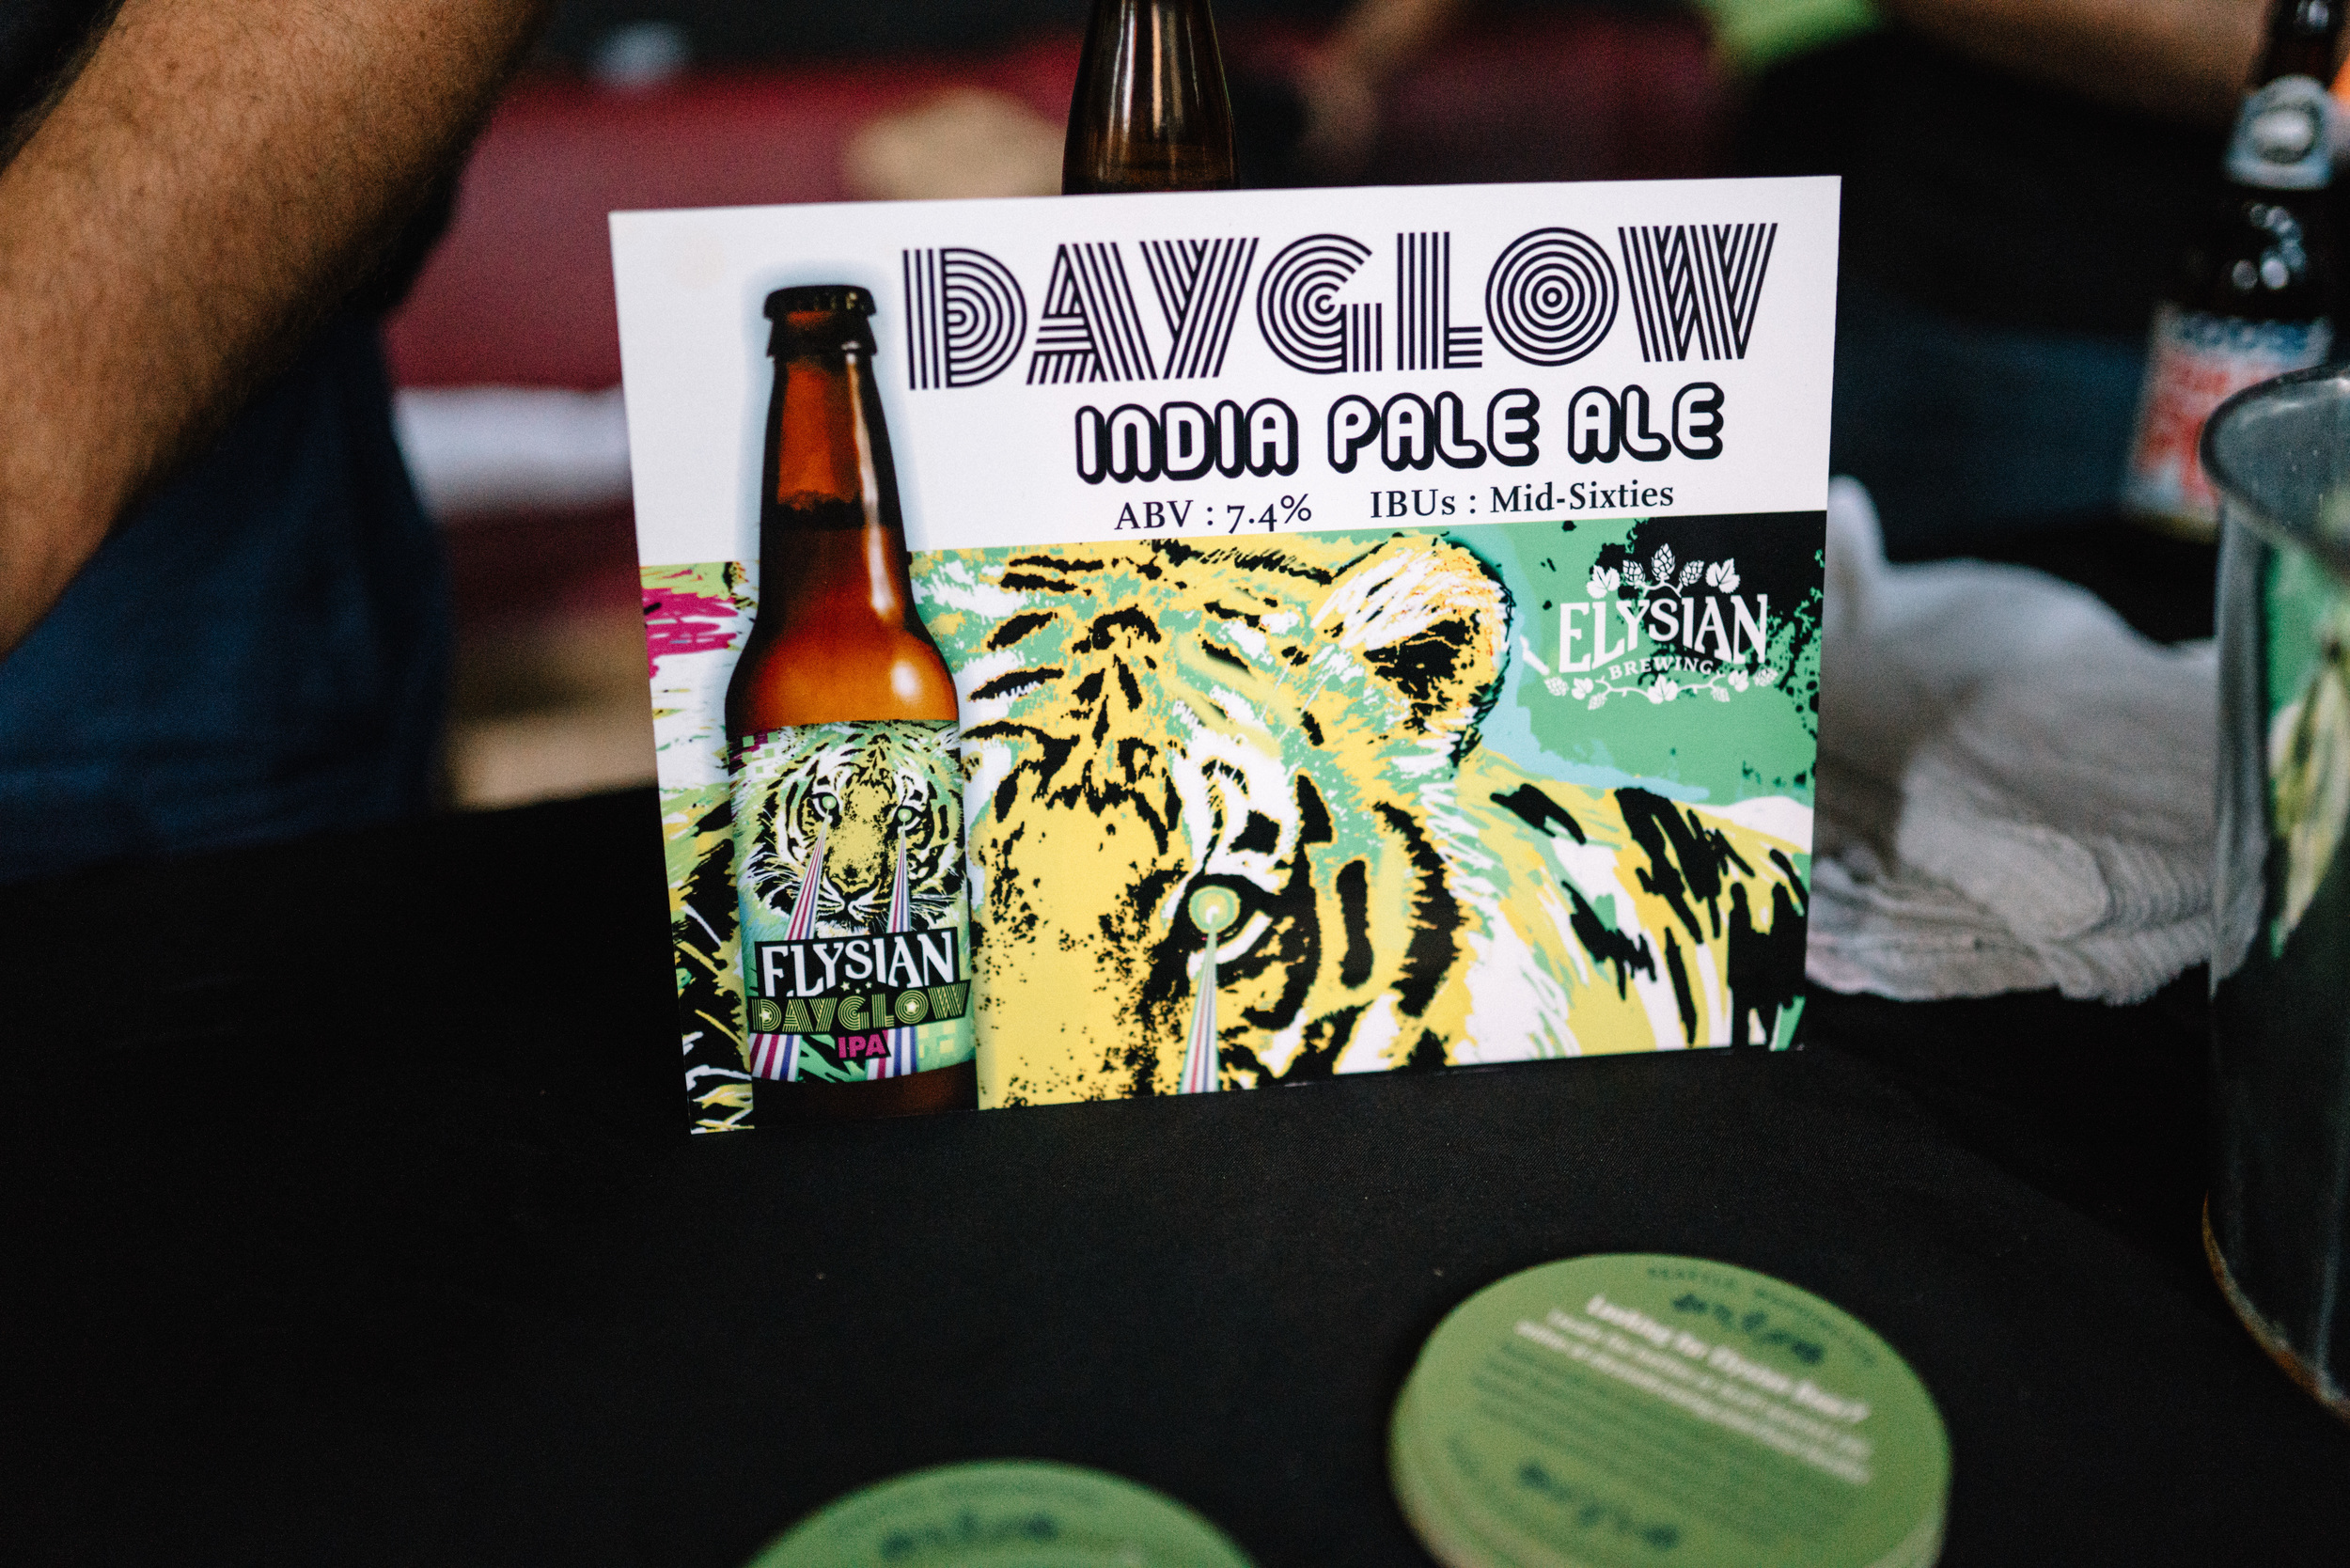 The new-age laser sighted Tiger, hence could be called a Liger? - Elysian Dayglow IPA